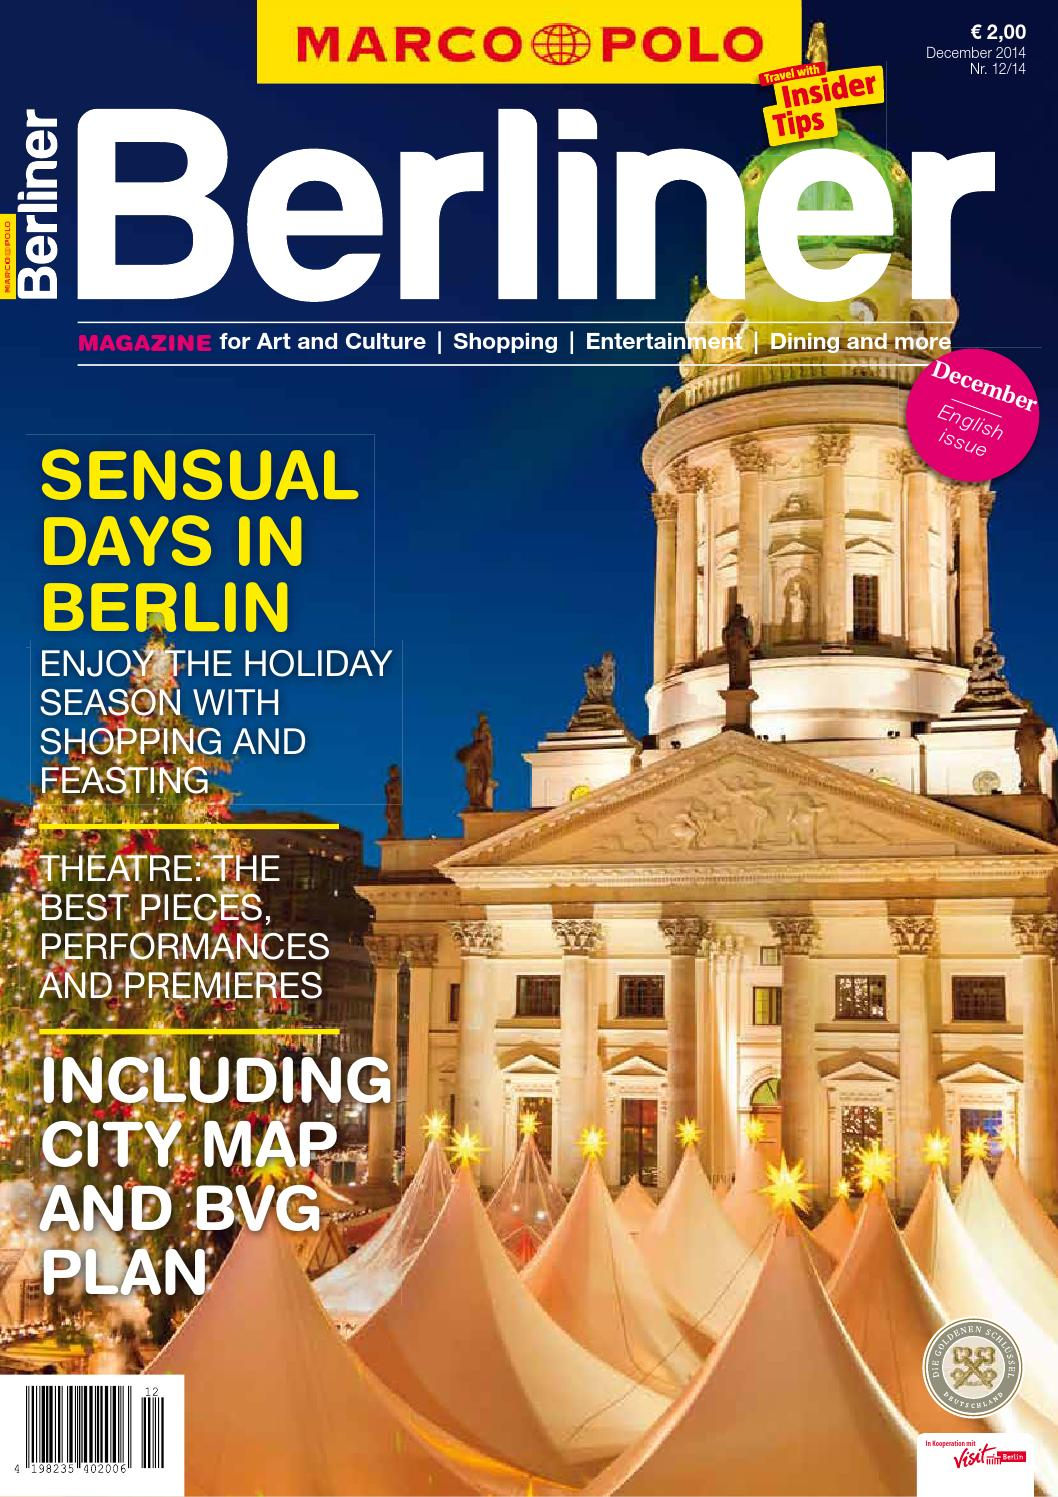 English - MARCO POLO BERLINER 12/14 by Berlin Medien GmbH - issuu